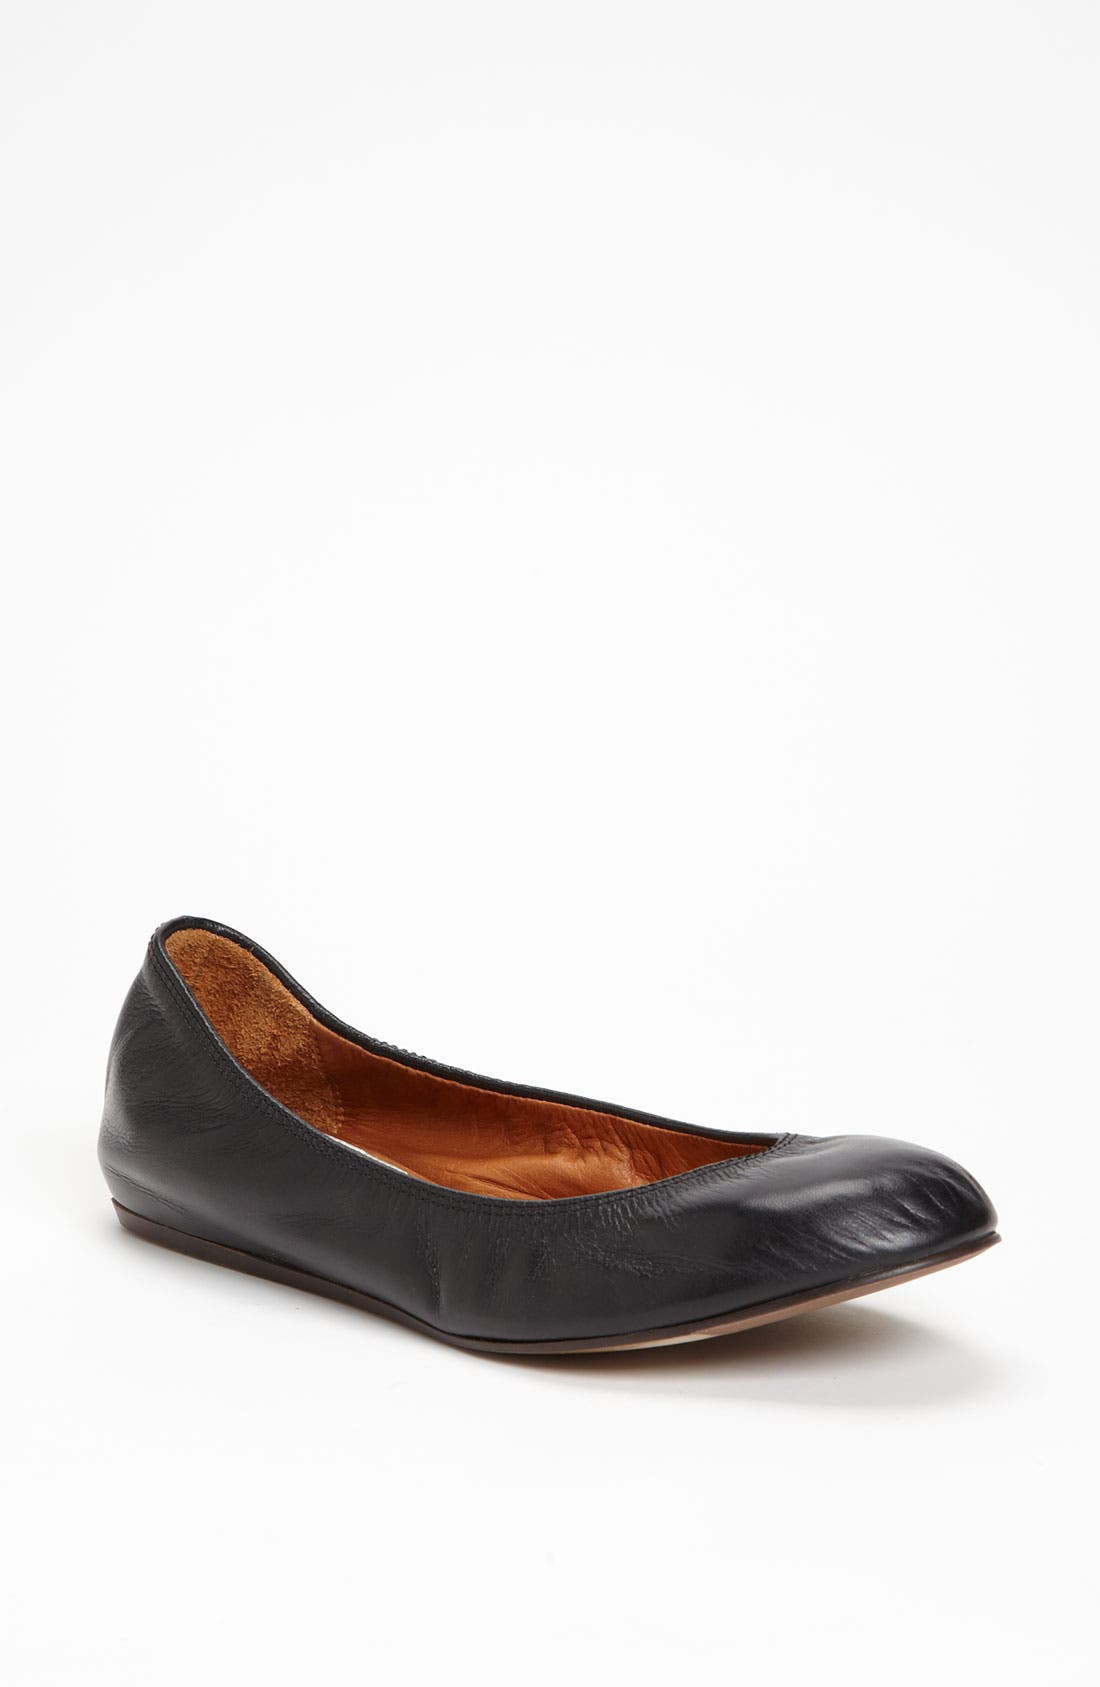 Alternate Image 1 Selected - Lanvin Leather Ballerina Flat